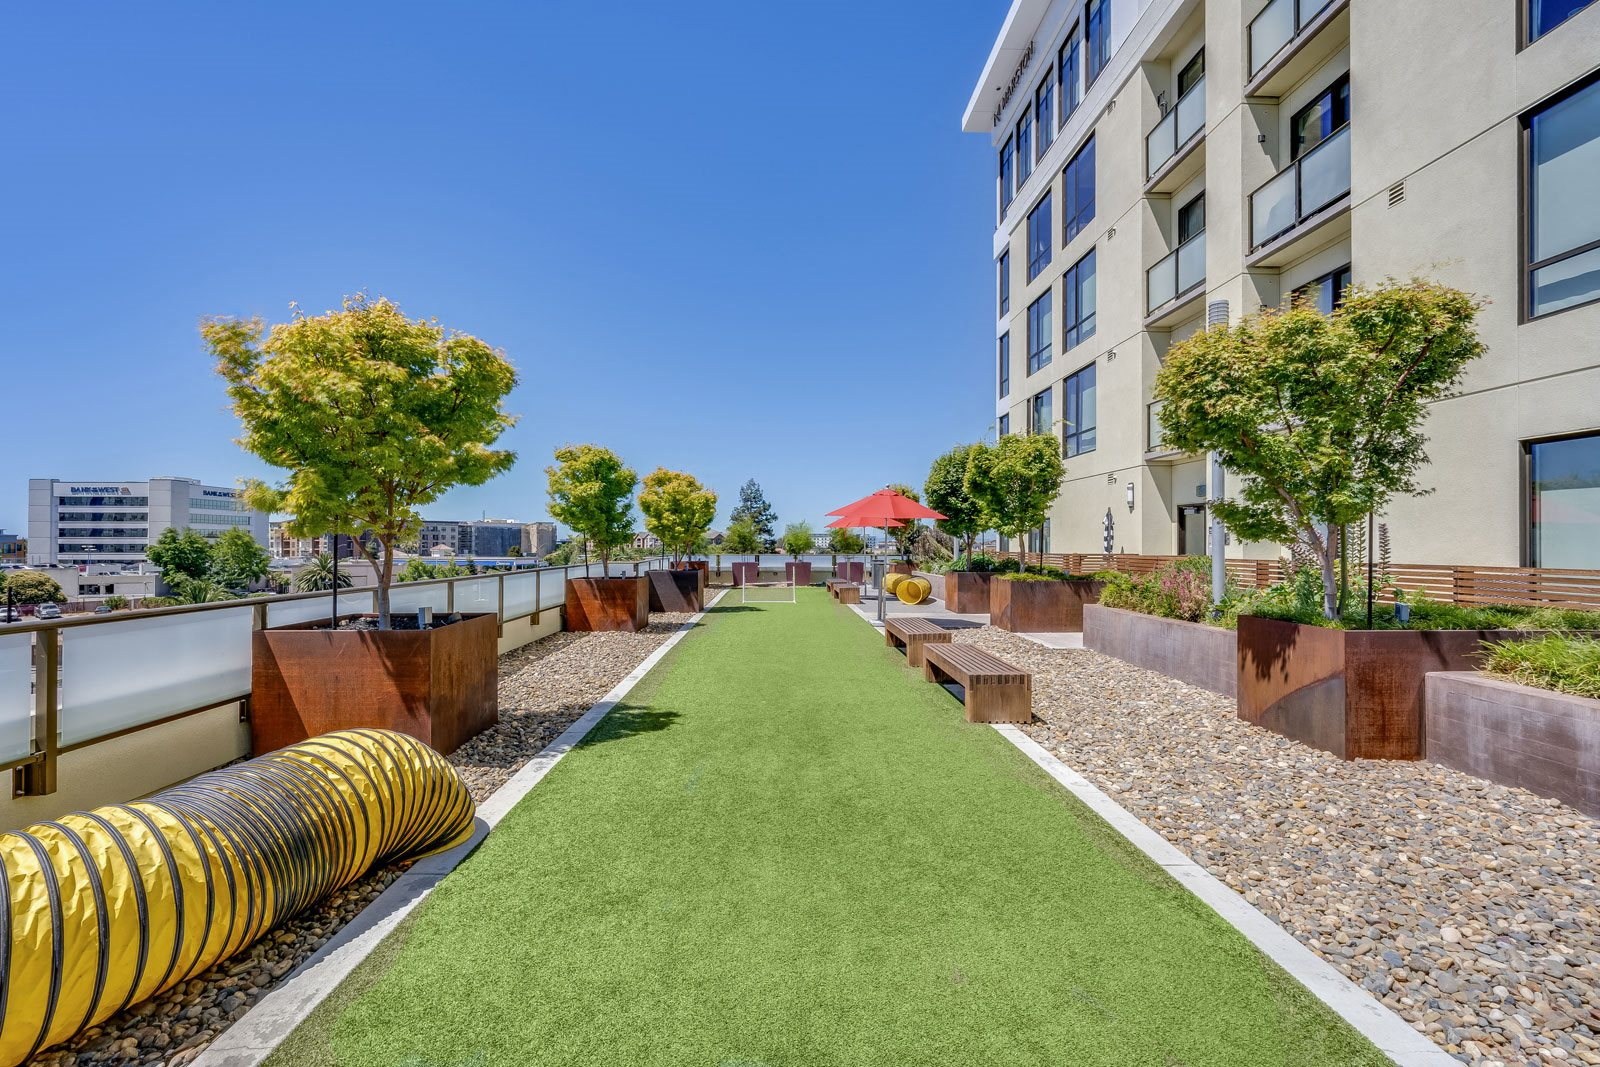 Outdoor Lounge at The Marston by Windsor, 825 Marshall Street, CA